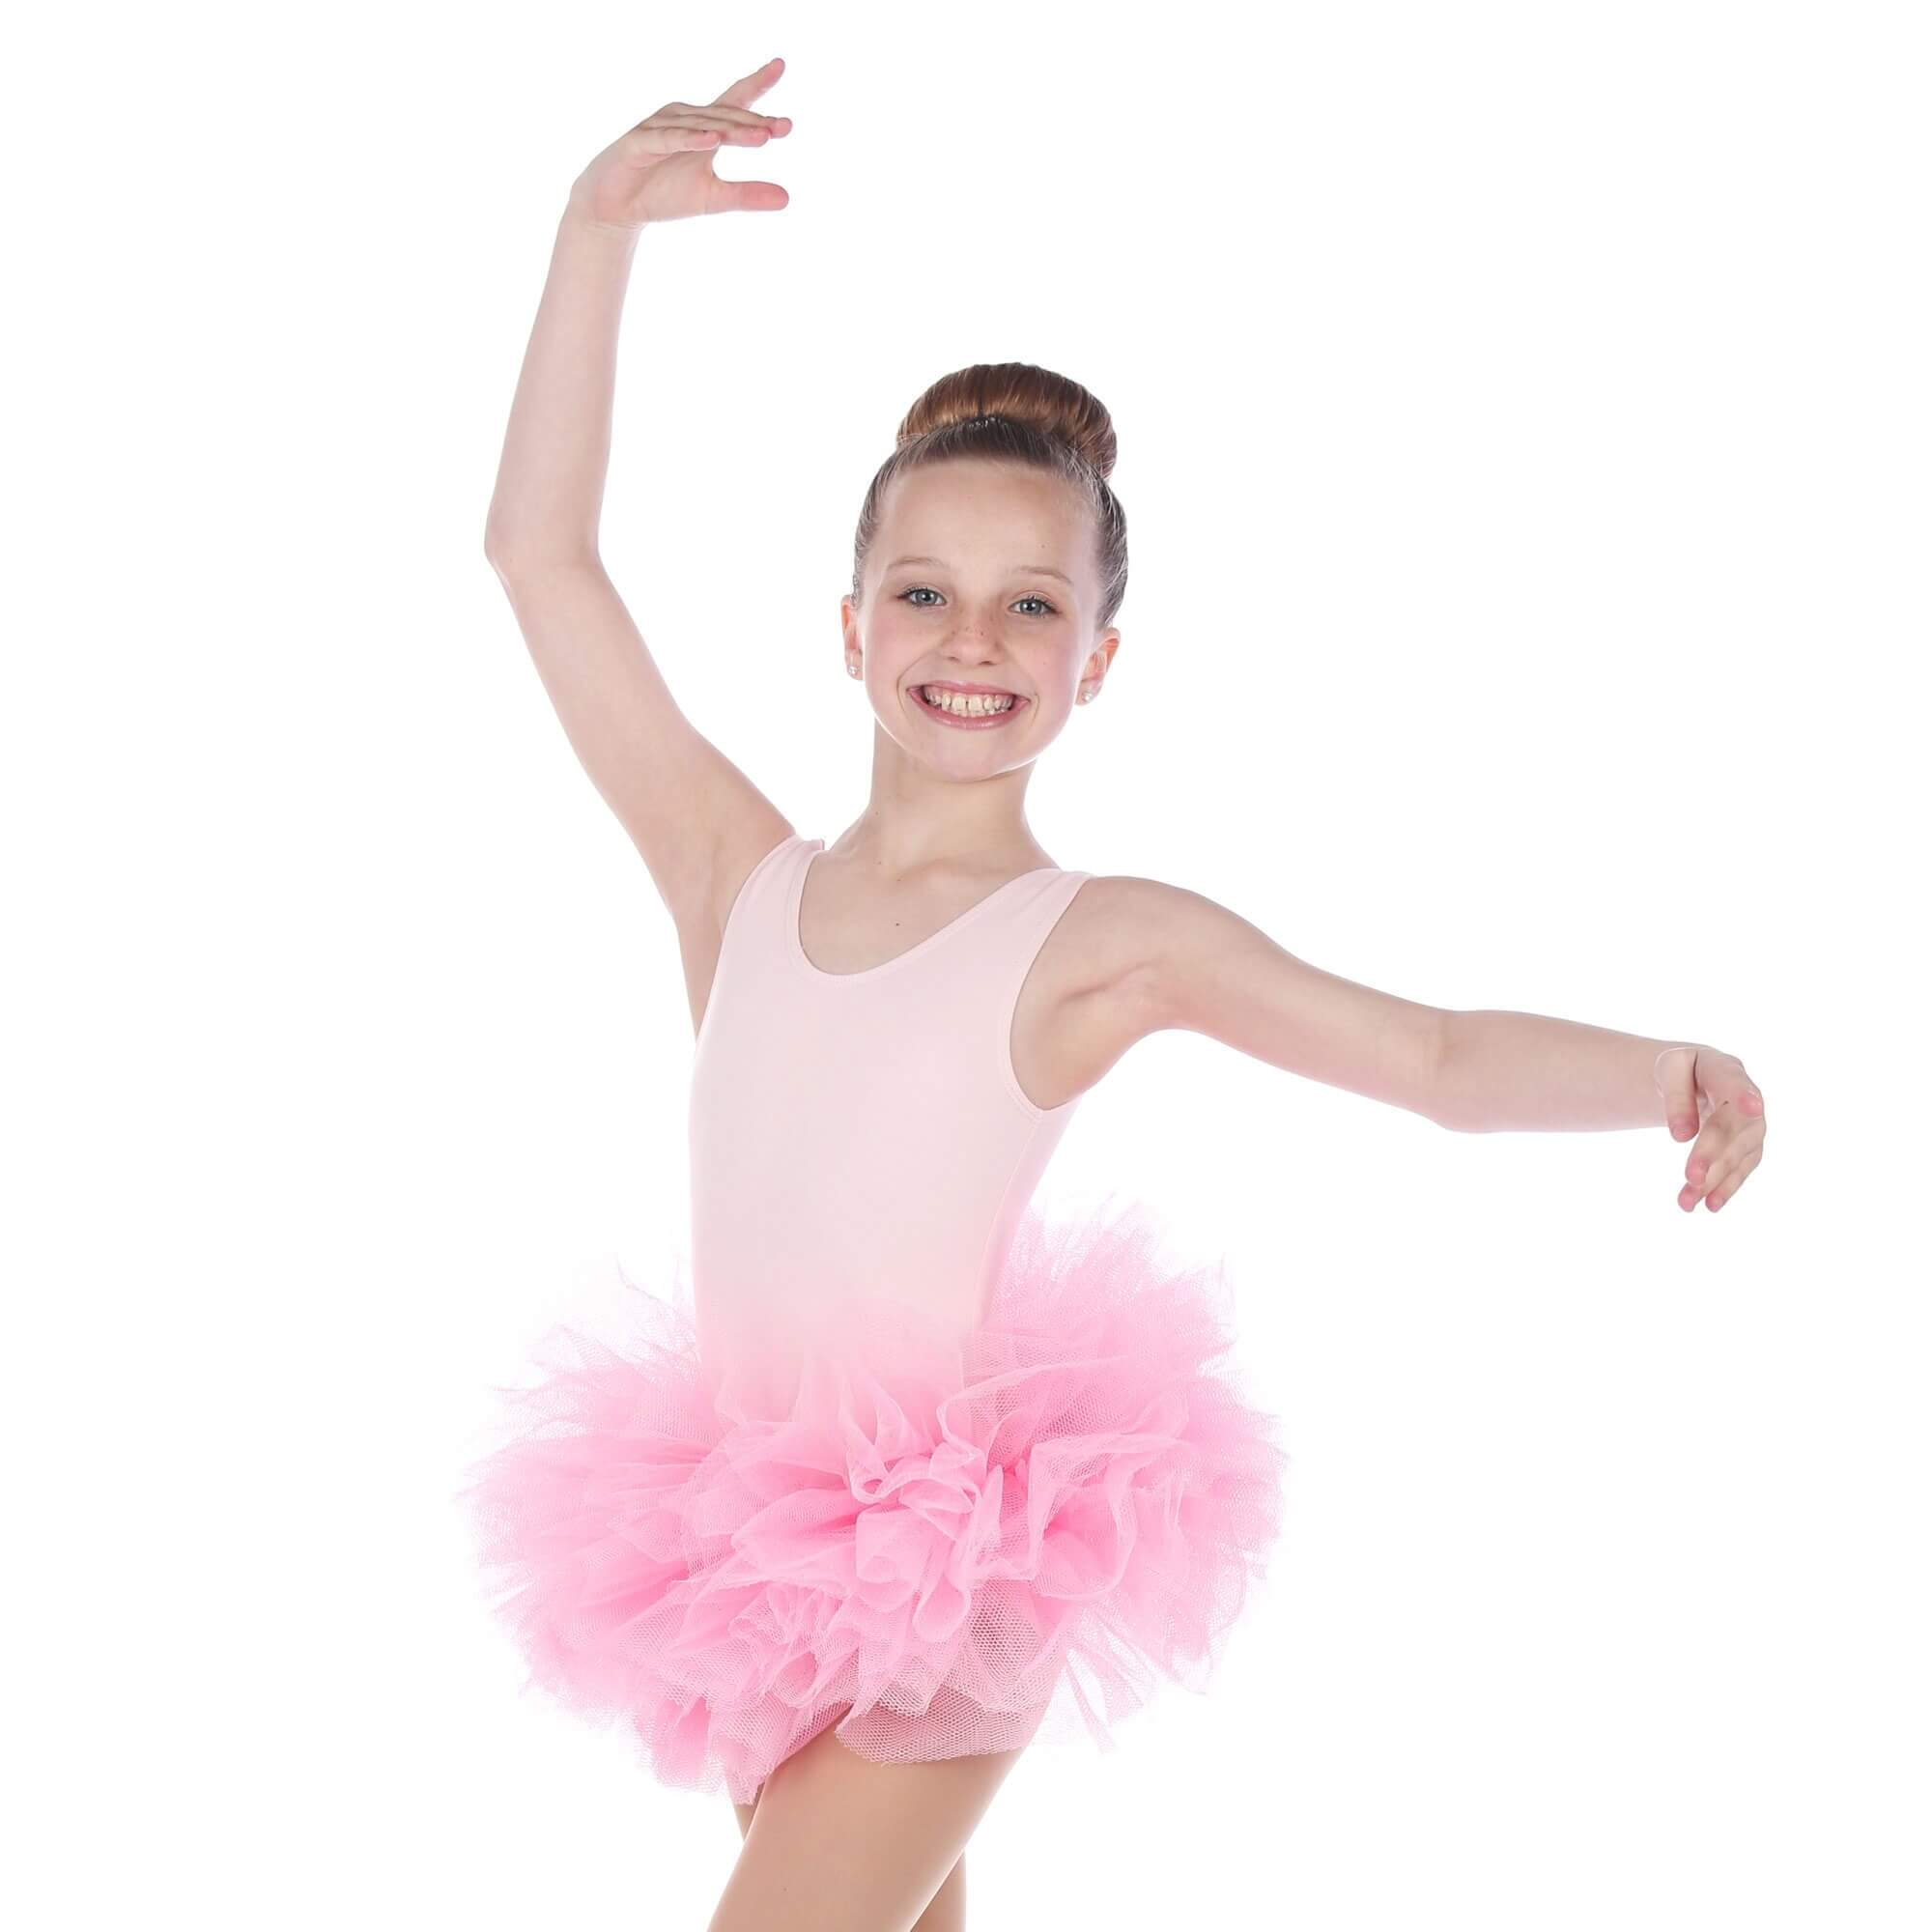 915a848cf4 Ballet: tutu, leotards, ballet shoes, tutus, tutu skirts, tutu ...